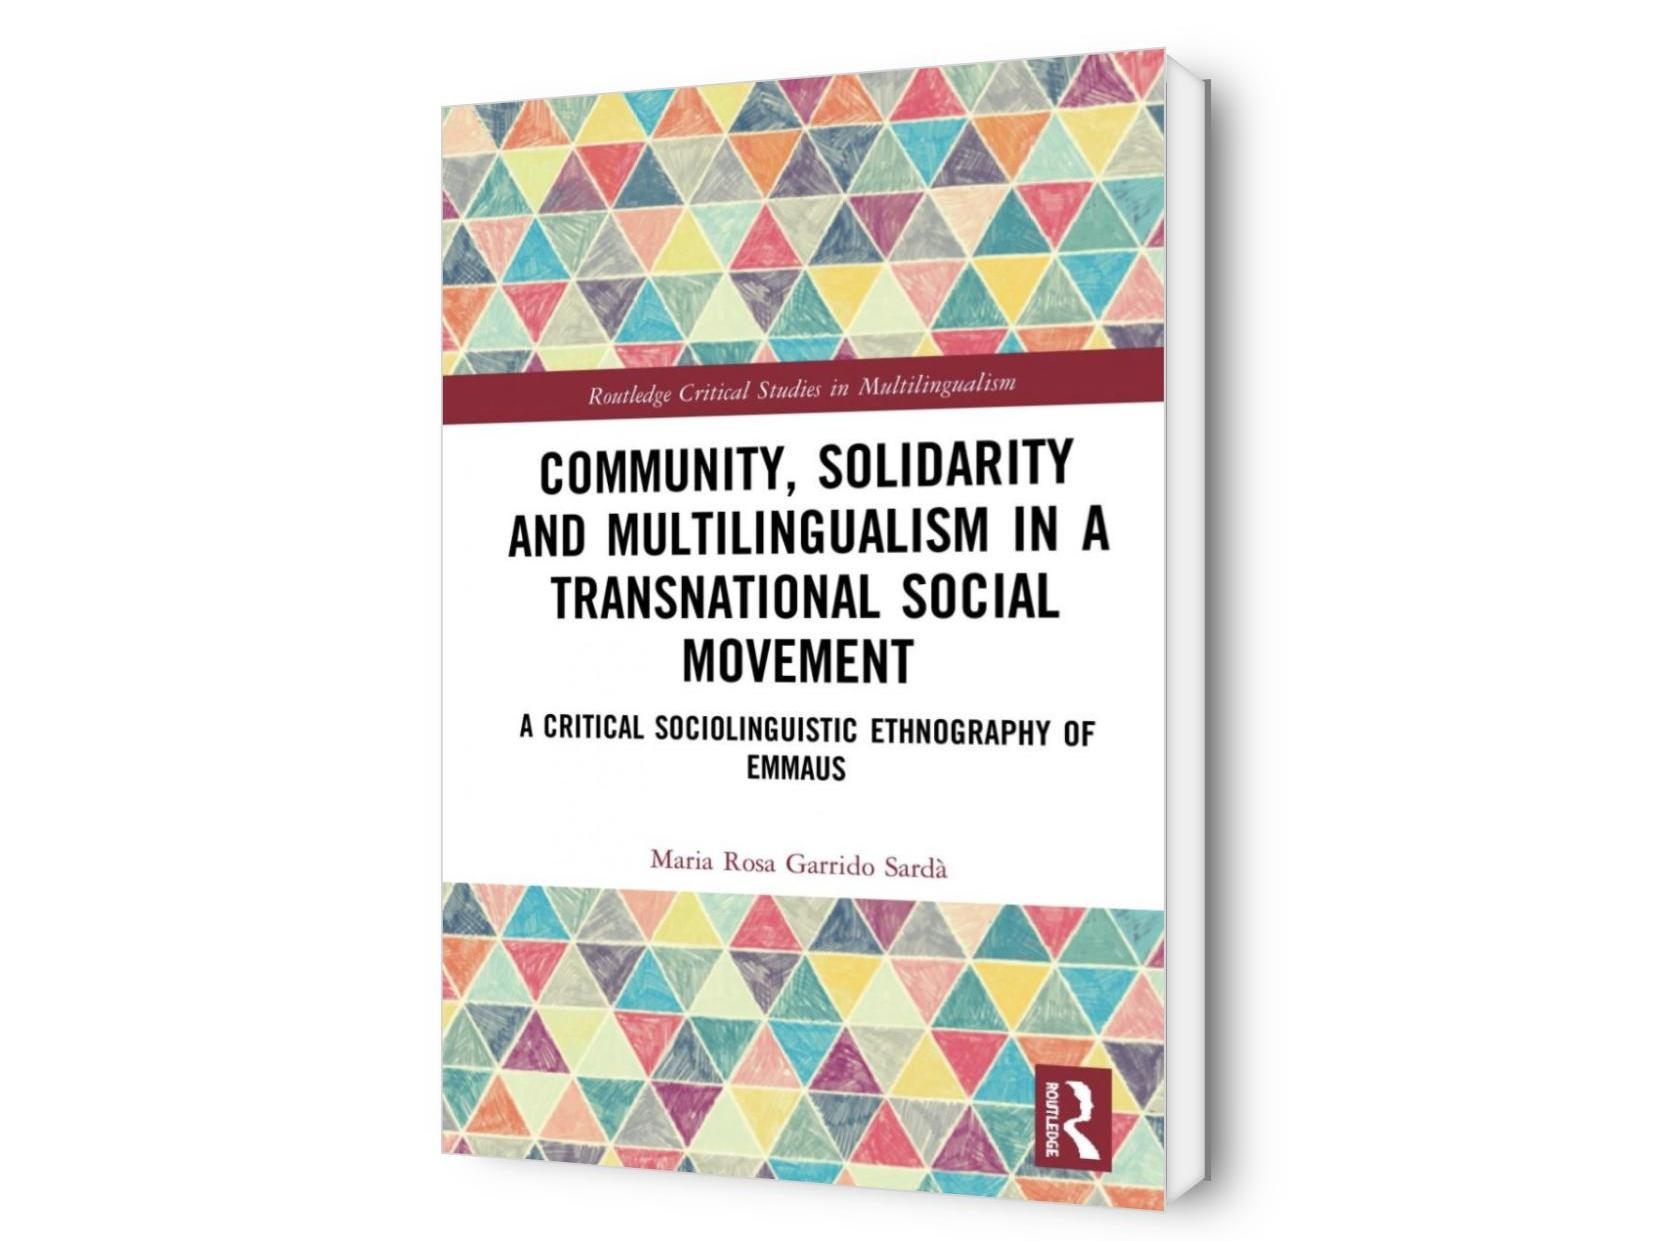 Community, Solidarity and Multilingualism in a Transnational Social Movement. A Critical Sociolinguistic Ethnography of Emmaus